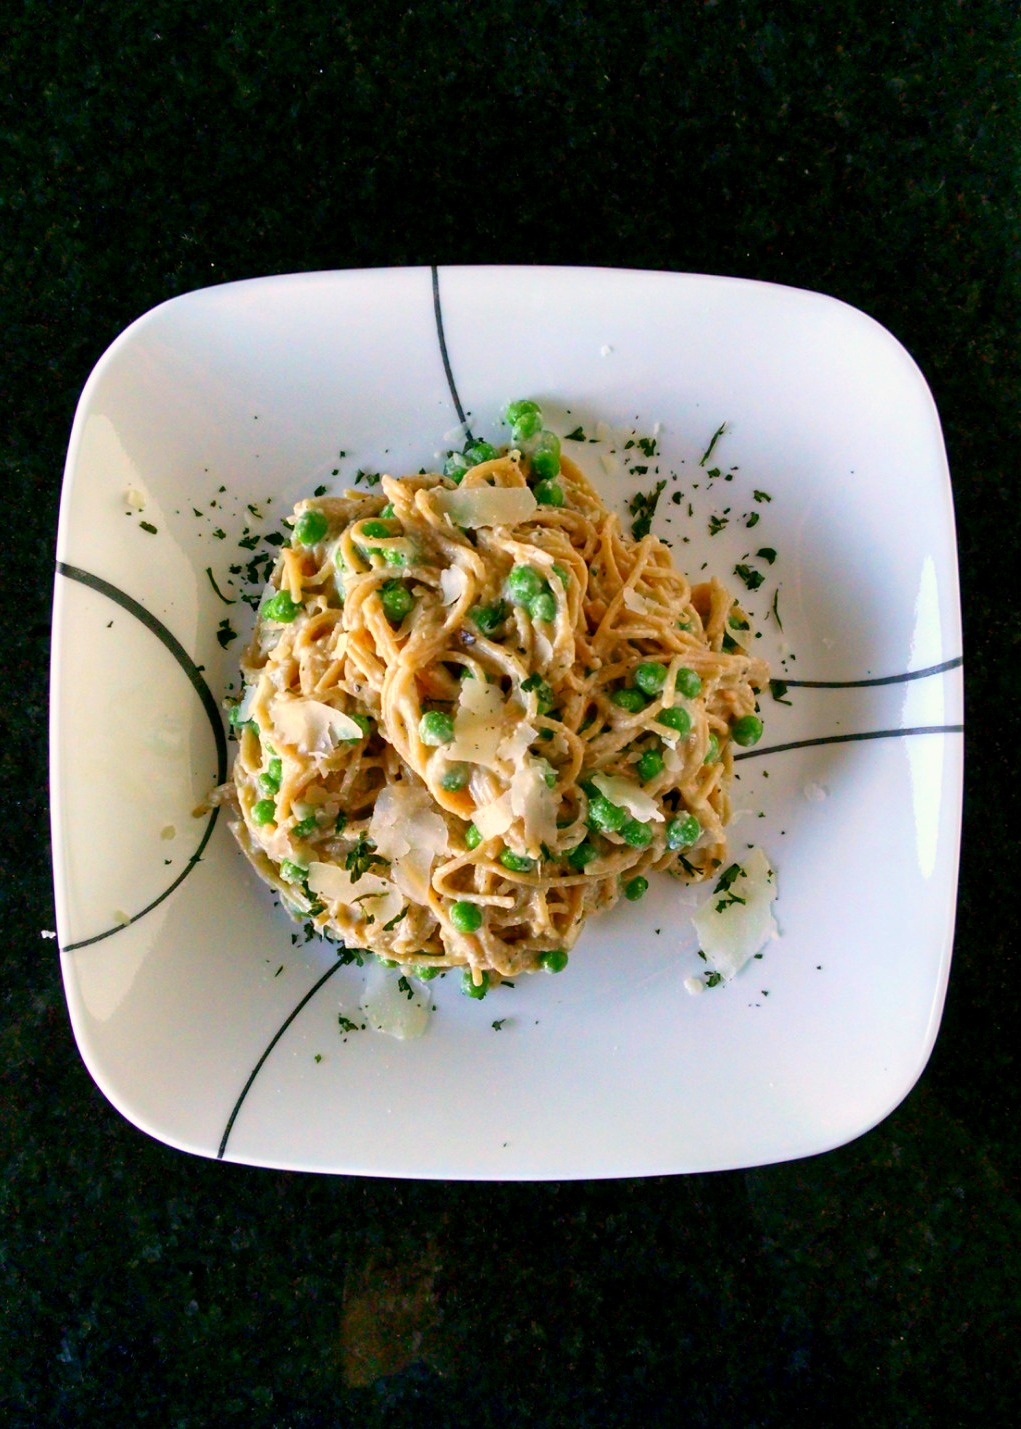 Creamy ricotta is added to the egg mixture; making this carbonara extra creamy and tasty. Then add crunchy spring peas and you have perfect Pea and Ricotta Carbonara perfect for any night of the week.